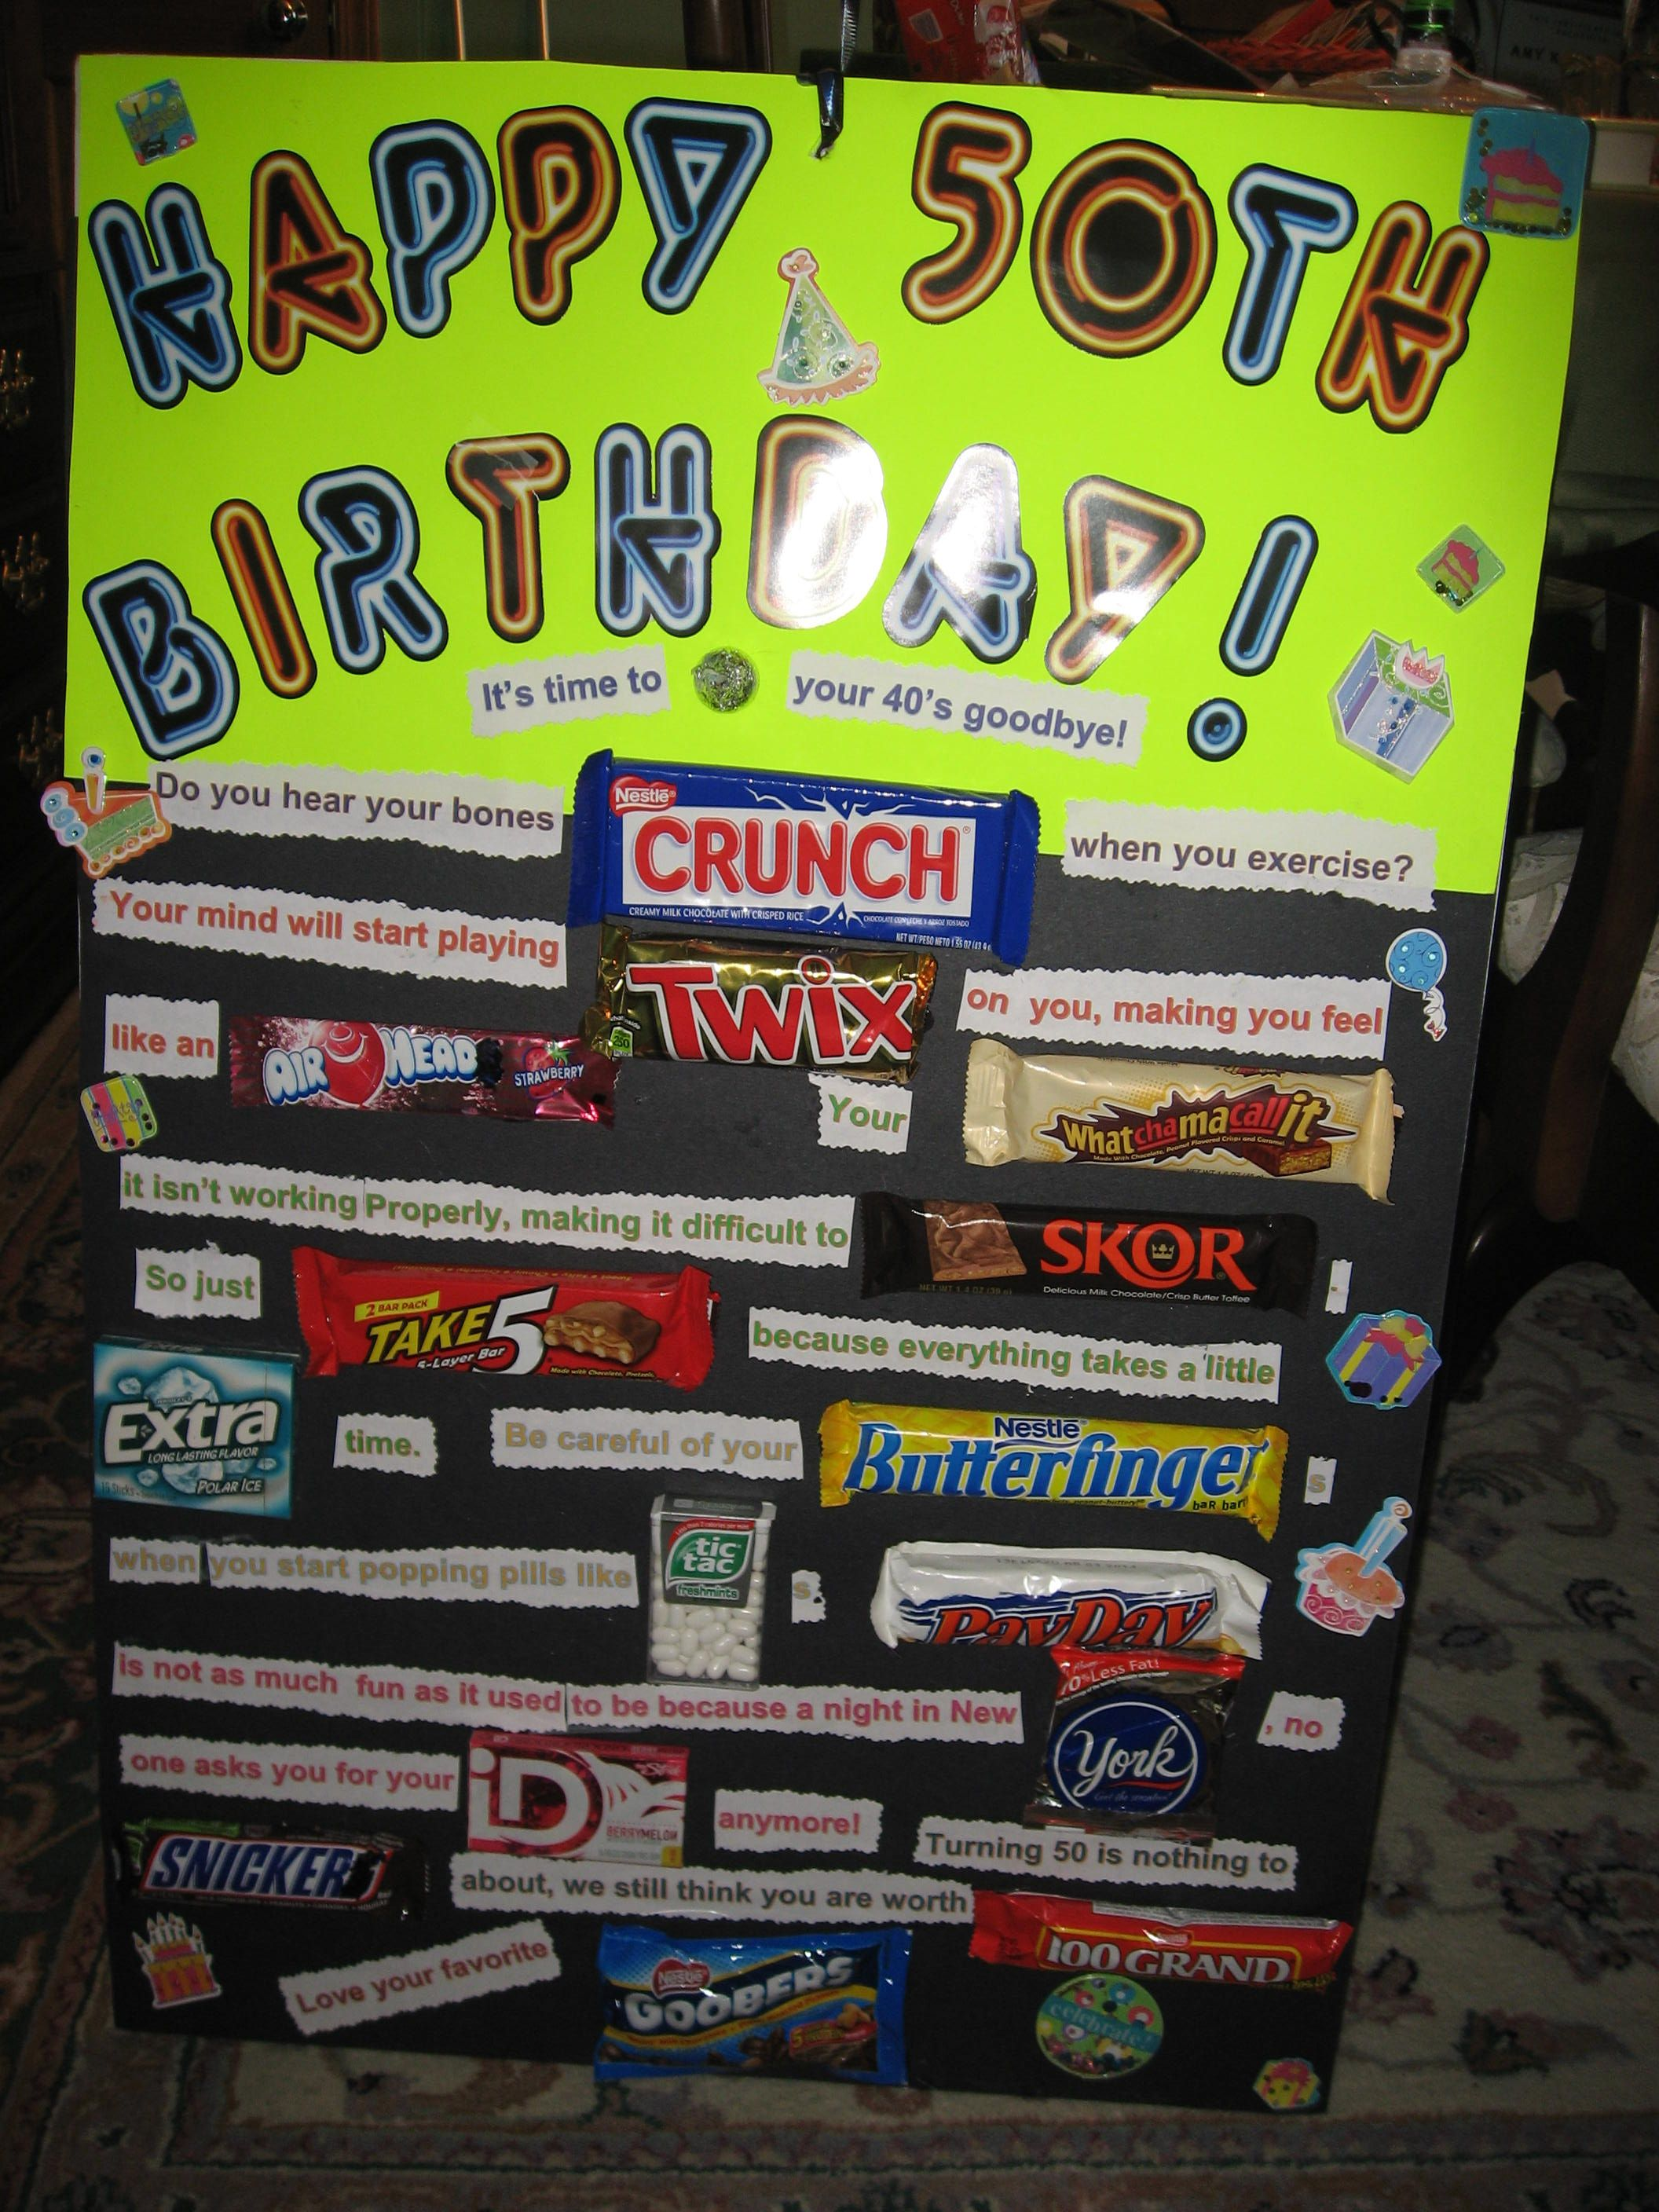 50th birthday ideas | Over the Hill Birthdays | Pinterest